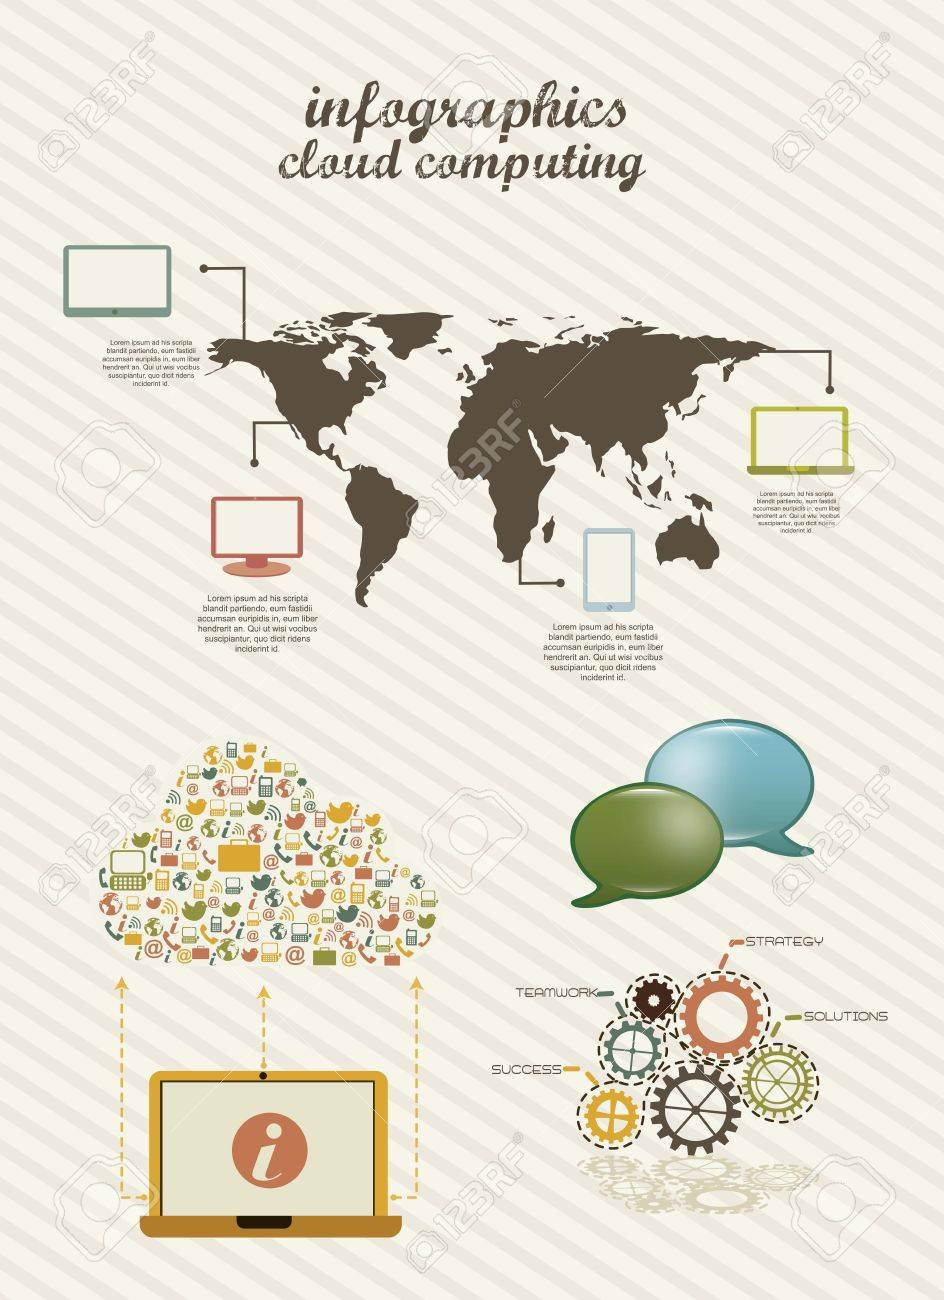 infographics cloud computing, vintage style. vector illustration Stock Vector - 16290319